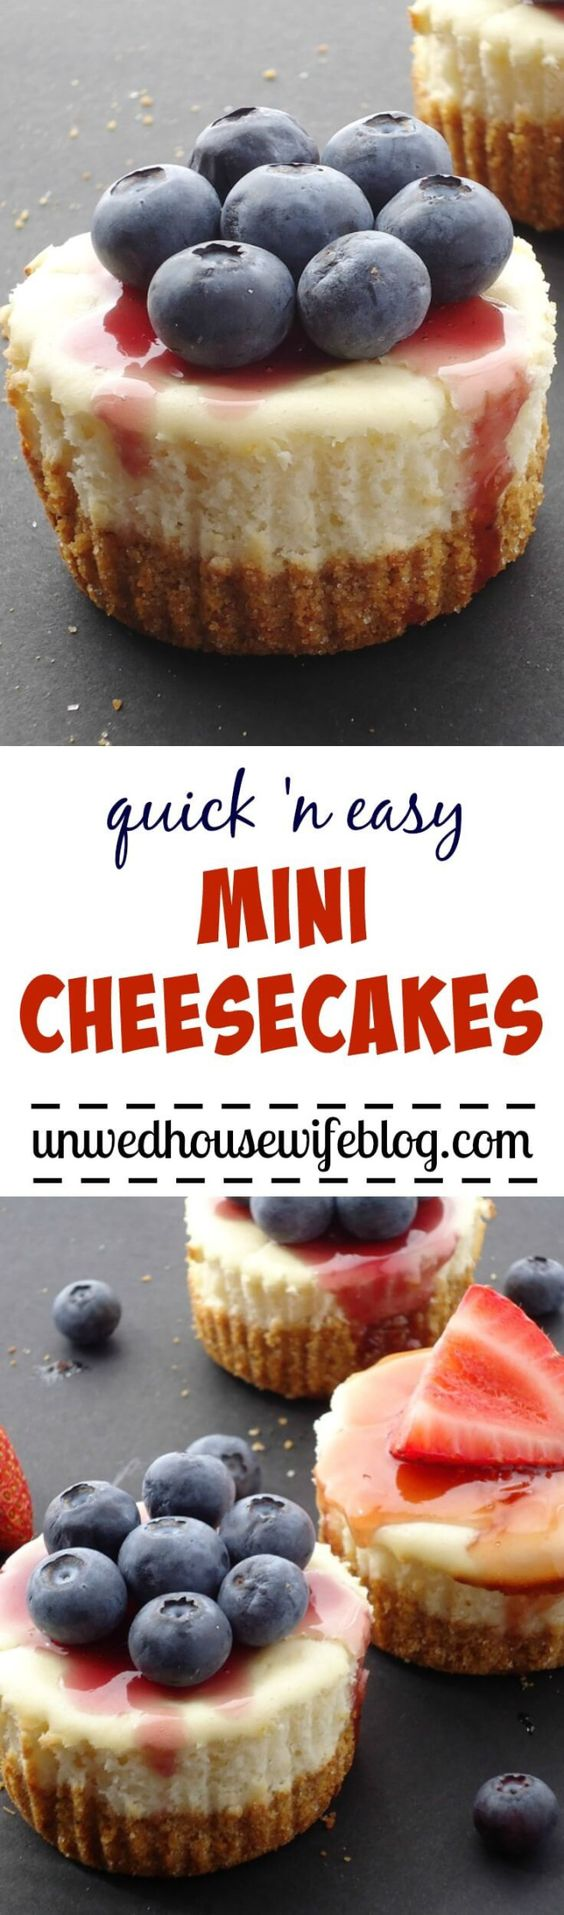 4th Of July Desserts Cheesecake And Easy Desserts On